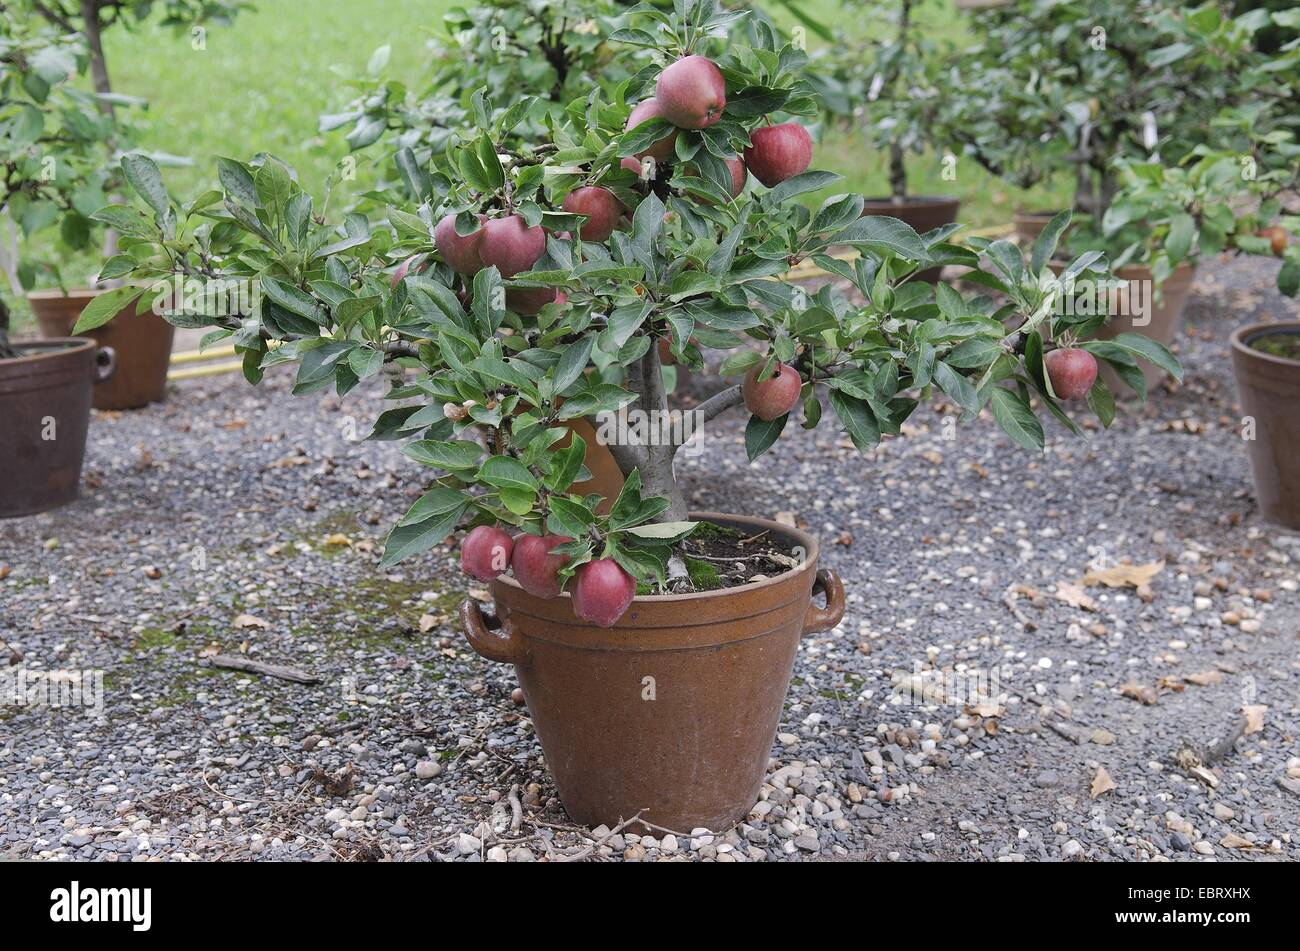 apple tree (Malus domestica 'Red Spur', Malus domestica Red Spur), cultivar Red Spur, apples on a tree - Stock Image